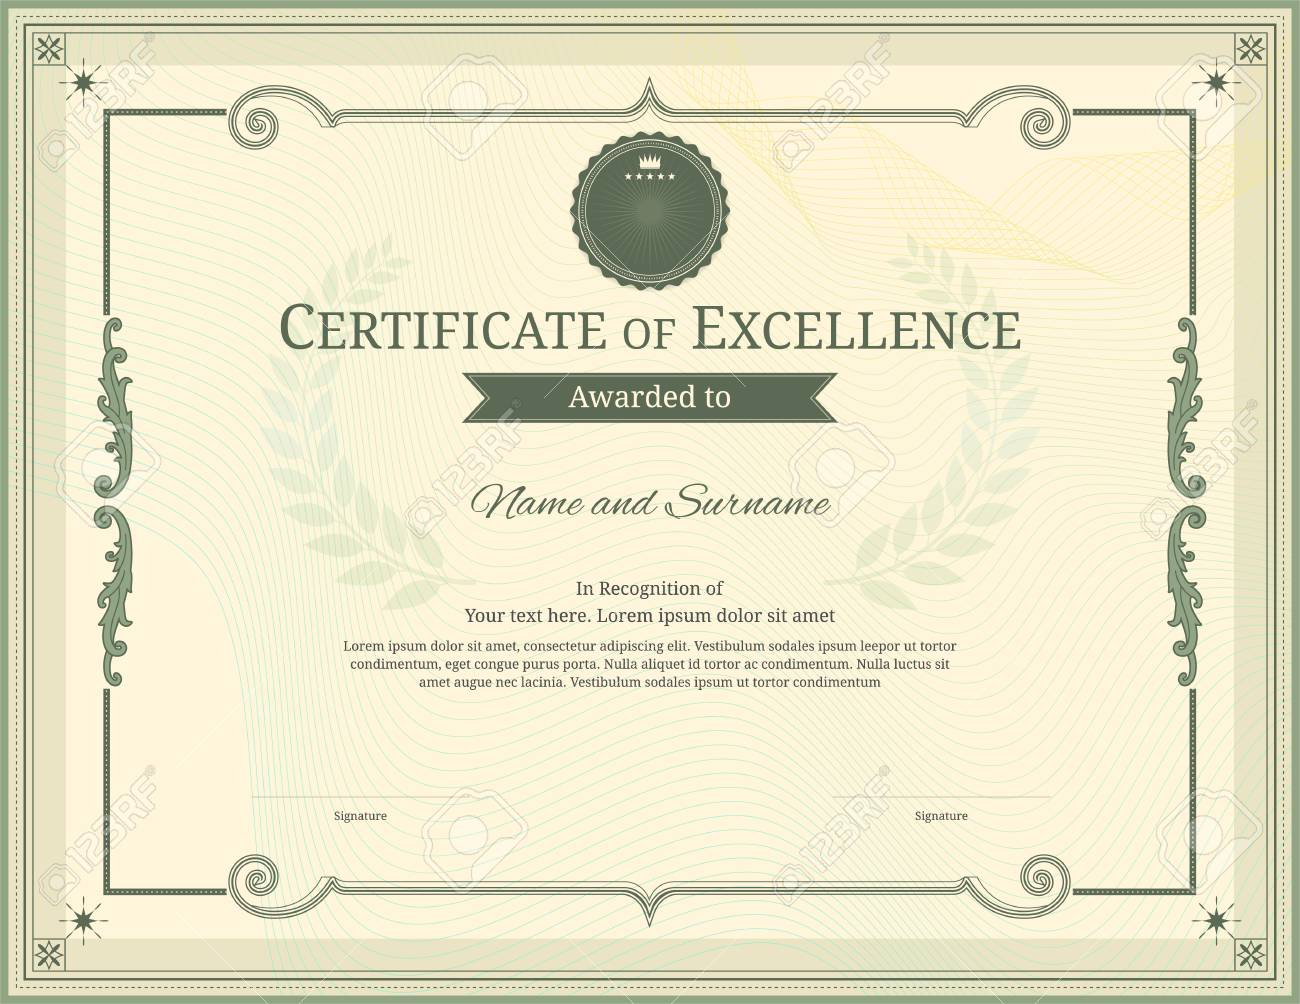 Luxury certificate template with elegant border frame diploma luxury certificate template with elegant border frame diploma design for graduation or completion stock vector yadclub Choice Image